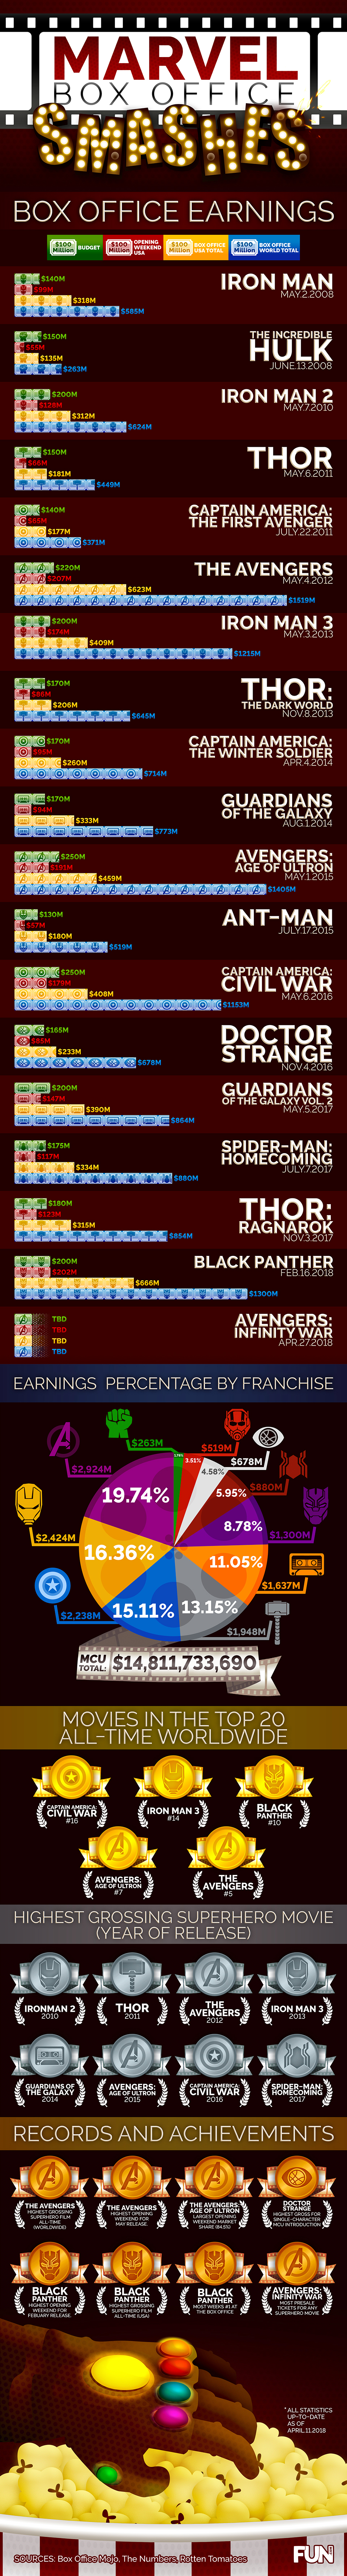 MCU Box Office Infographic